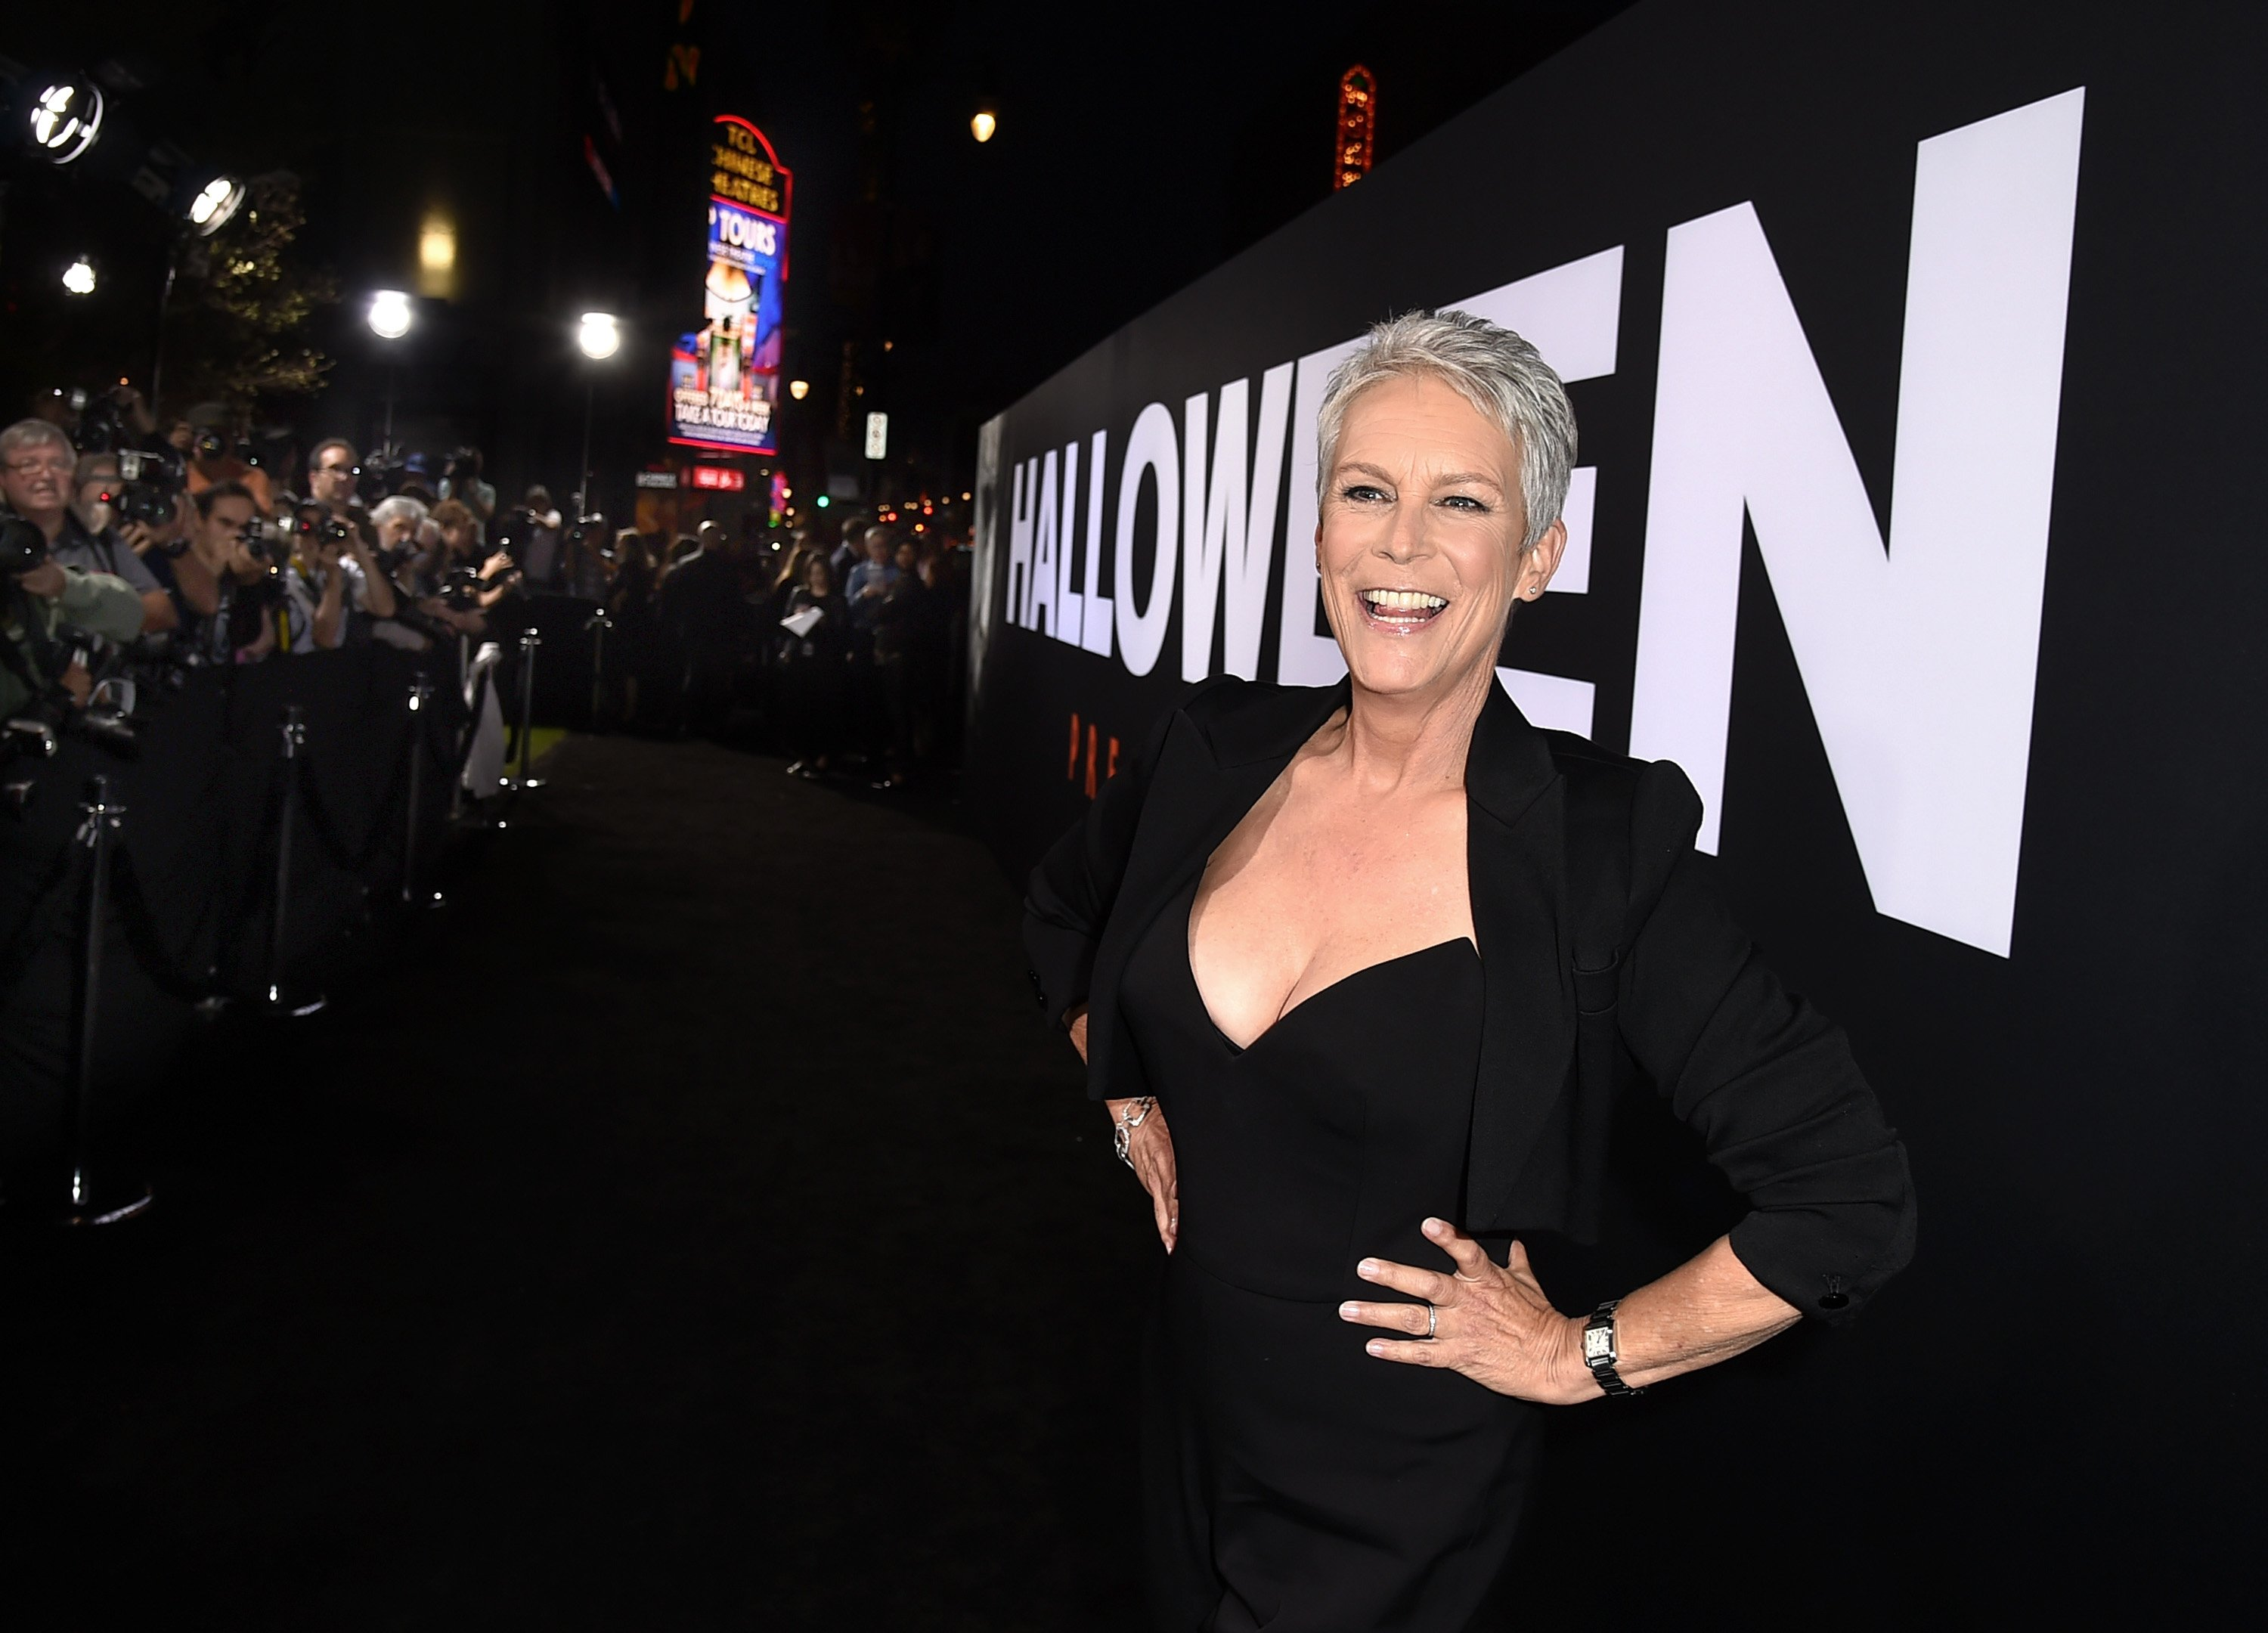 """Jamie Lee Curtis arrives at the premiere of Universal Pictures' """"Halloween"""" at the TCL Chinese Theatre on October 17, 2018 in Los Angeles, California 